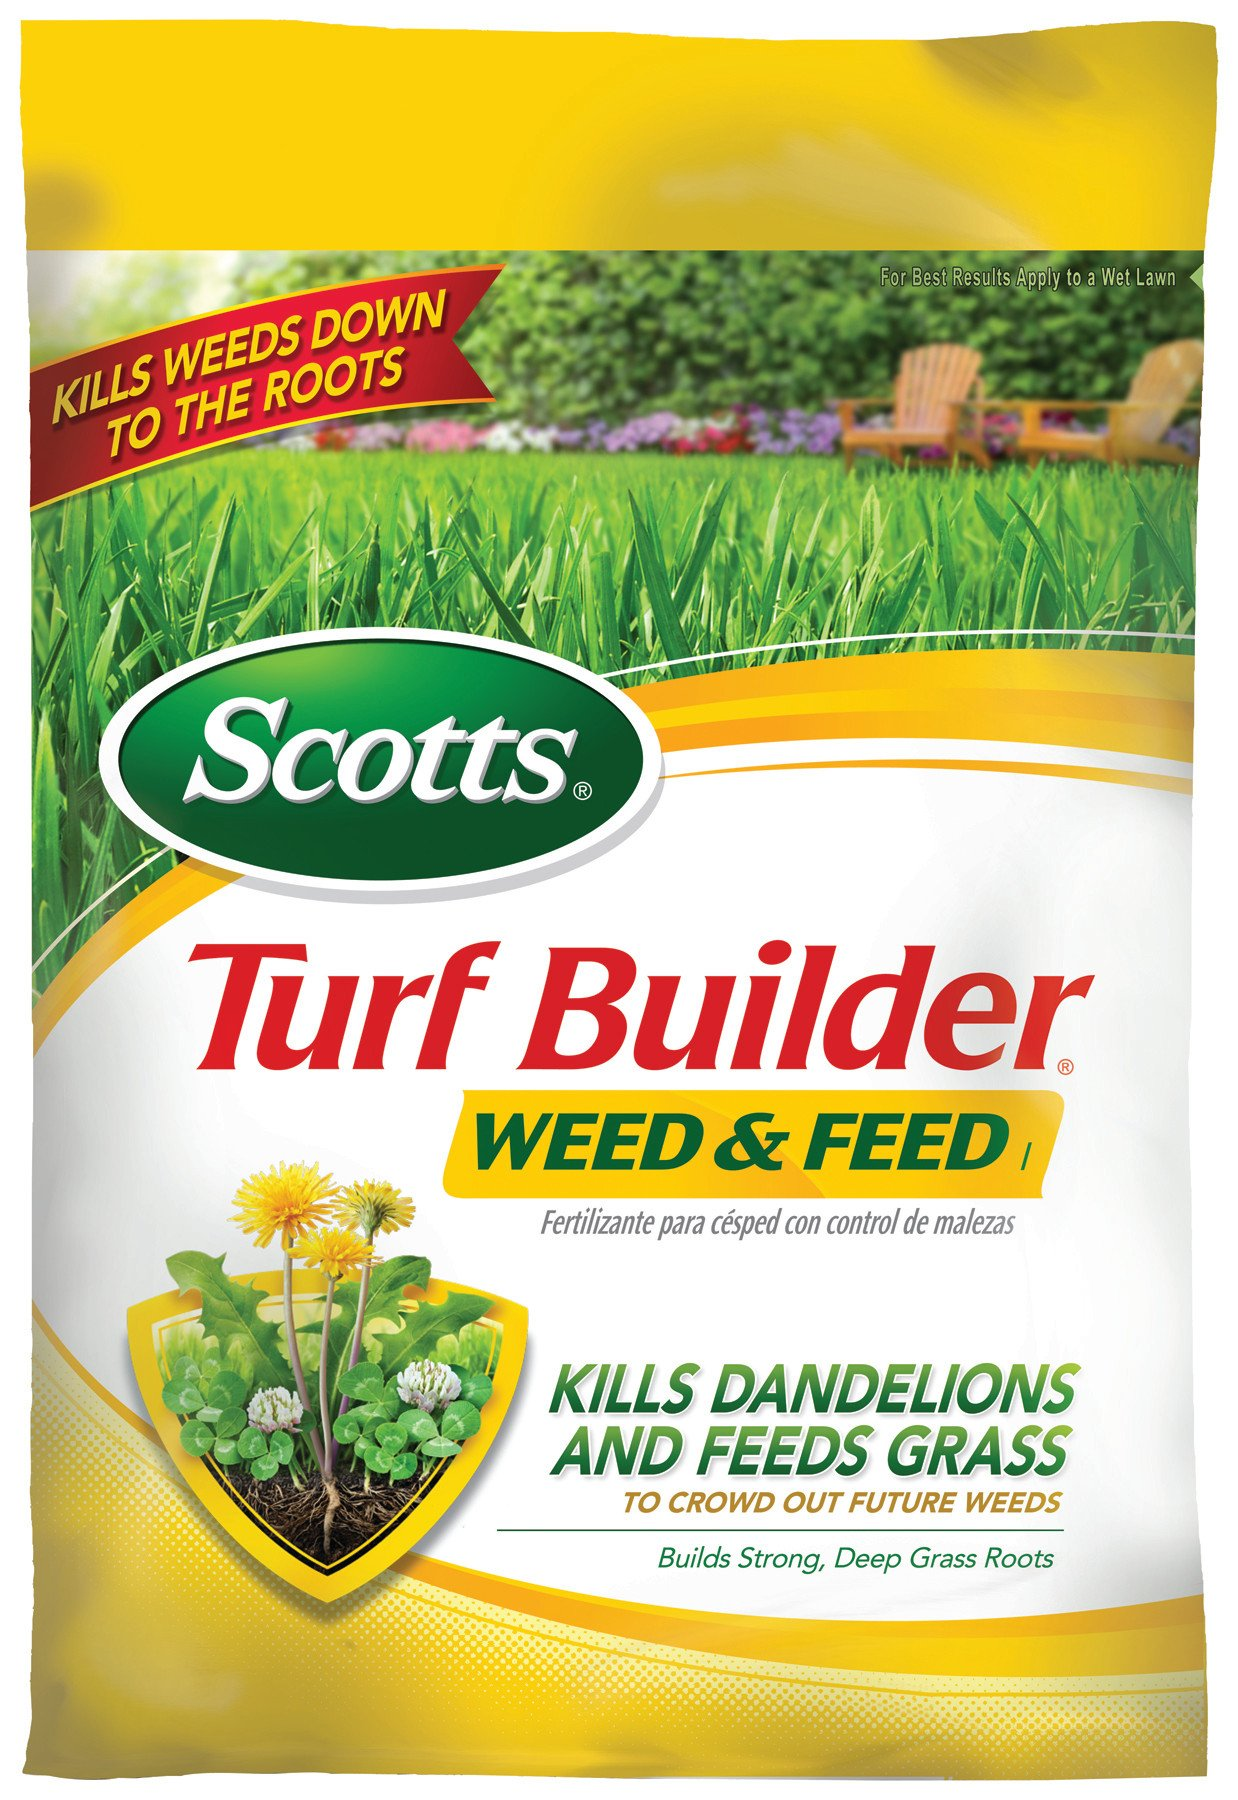 Scotts Turf Builder Lawn Food Weed And Feed Lawn Fertilizer Plus Dandelion Weed Killer Not Sold In Pinellas Buy Online In Barbados At Barbados Desertcart Com Productid 2429109